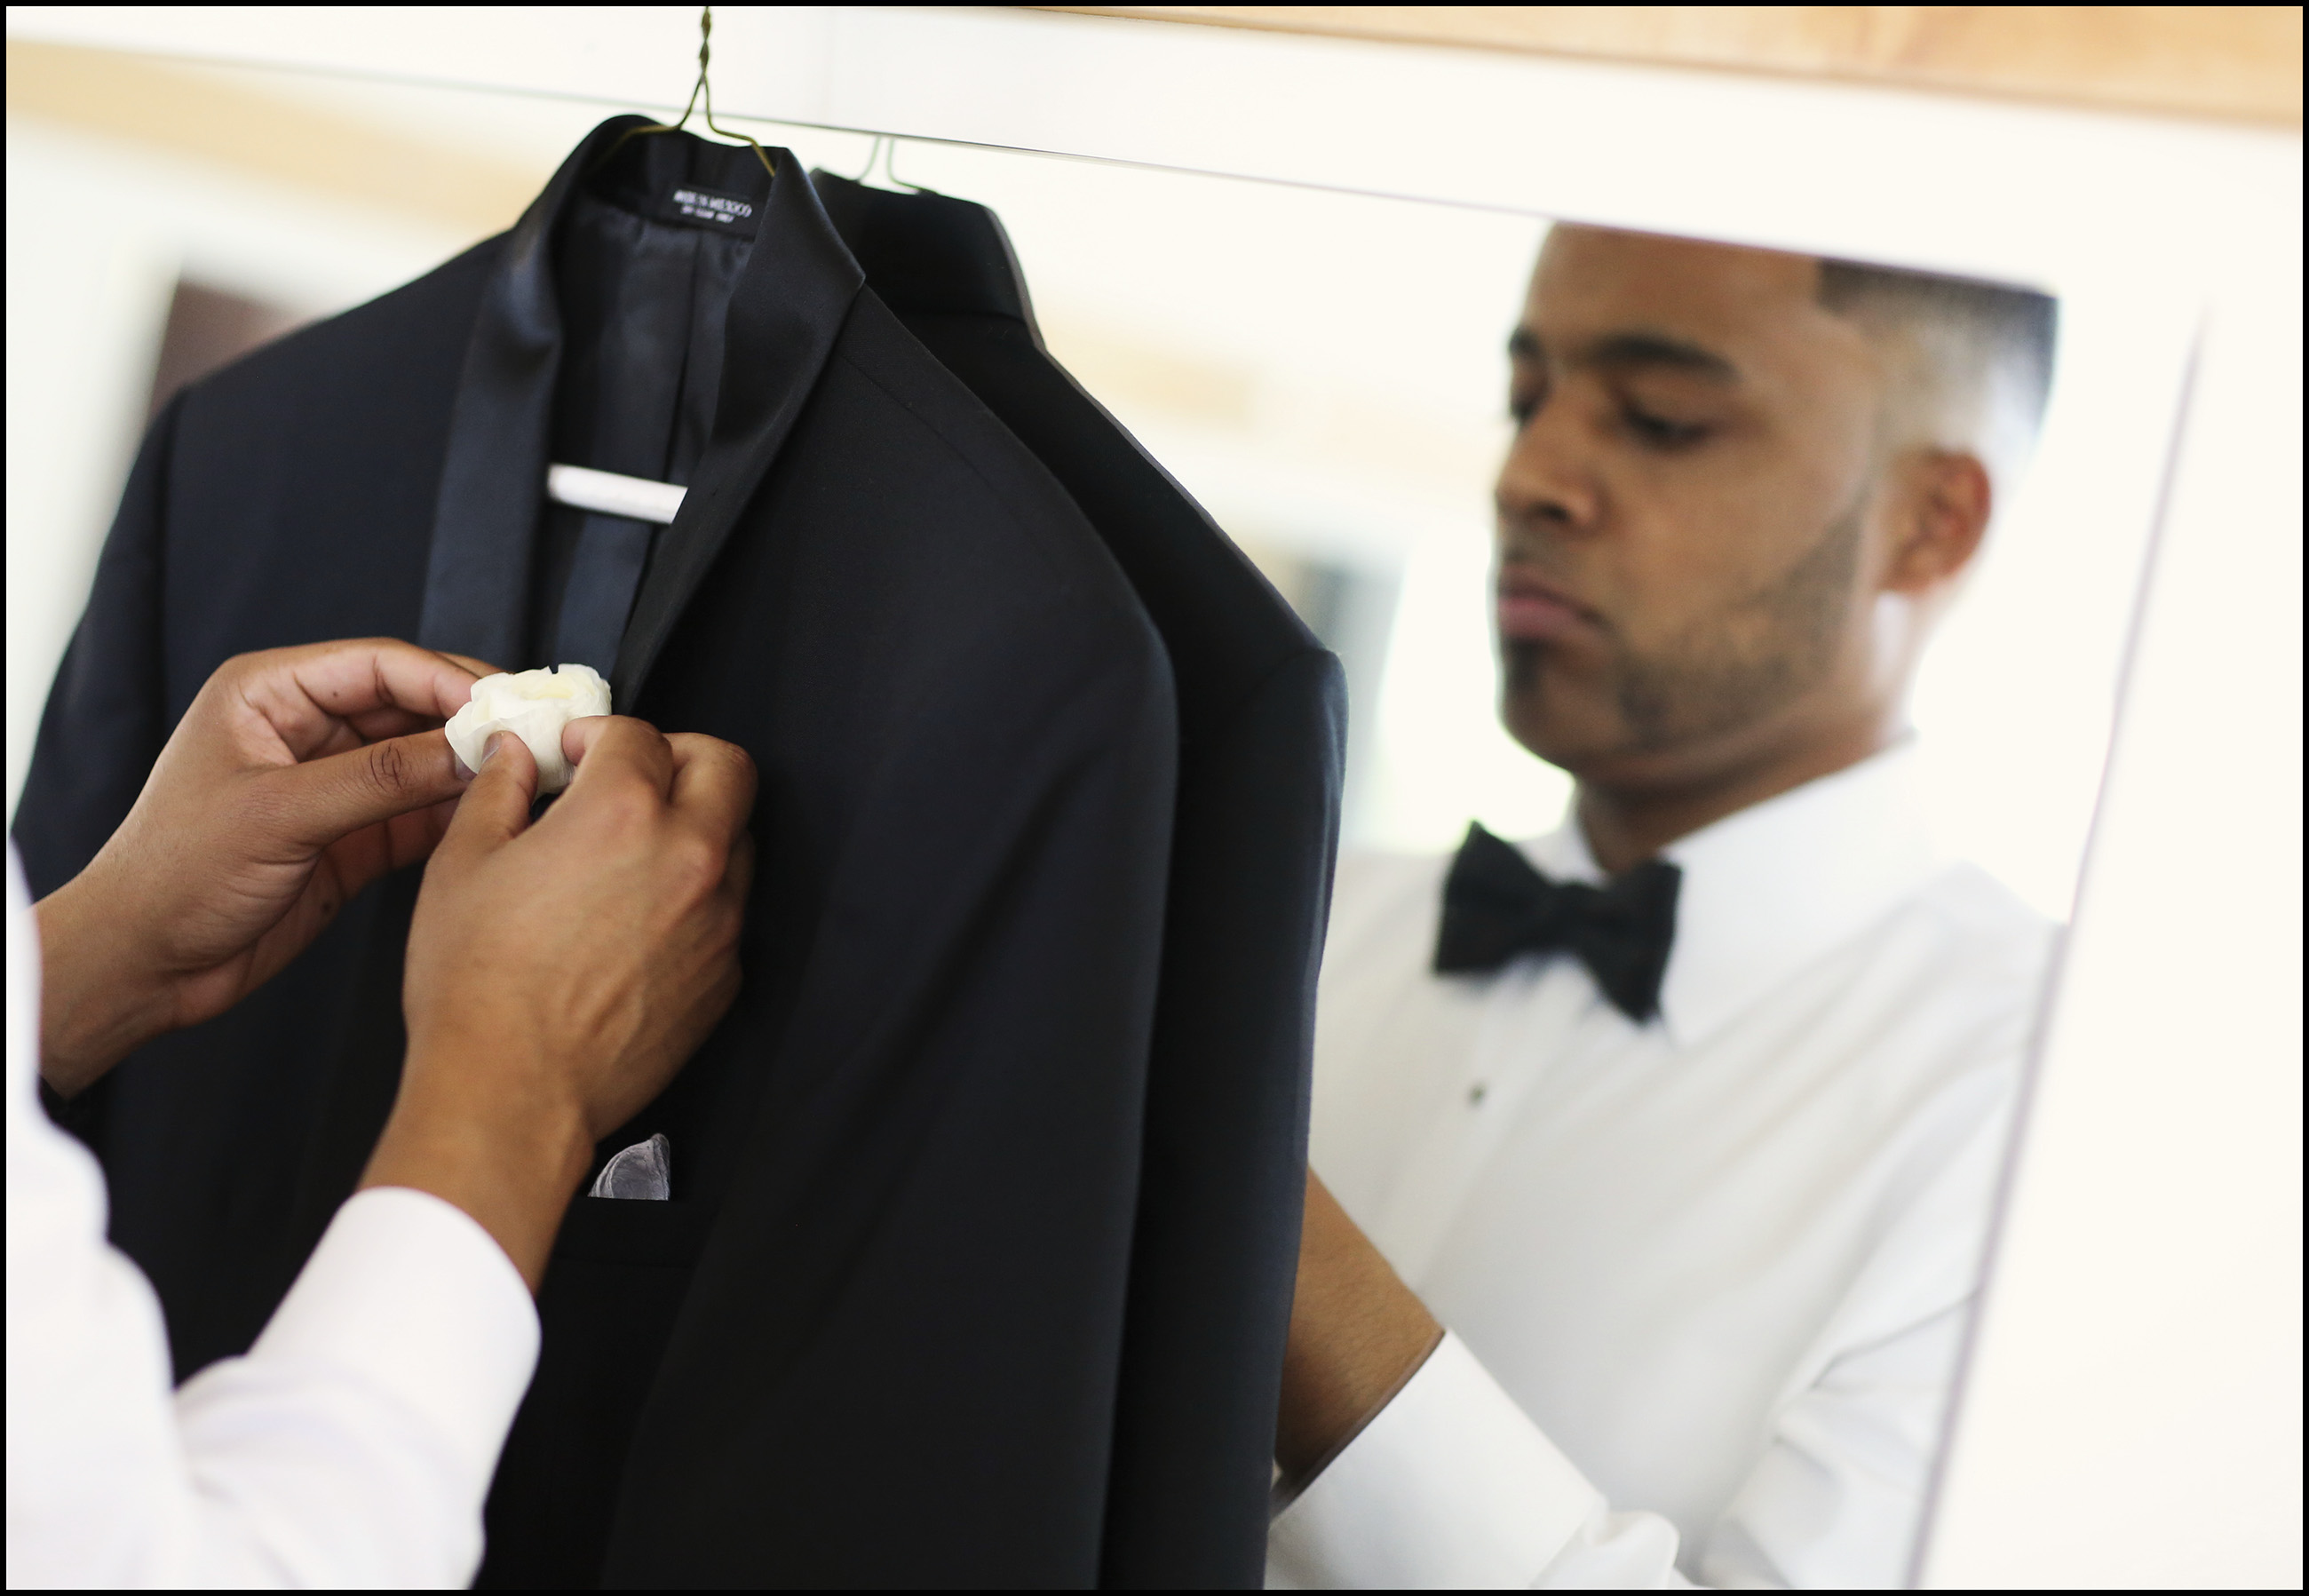 A groom puts himself together before his wedding.